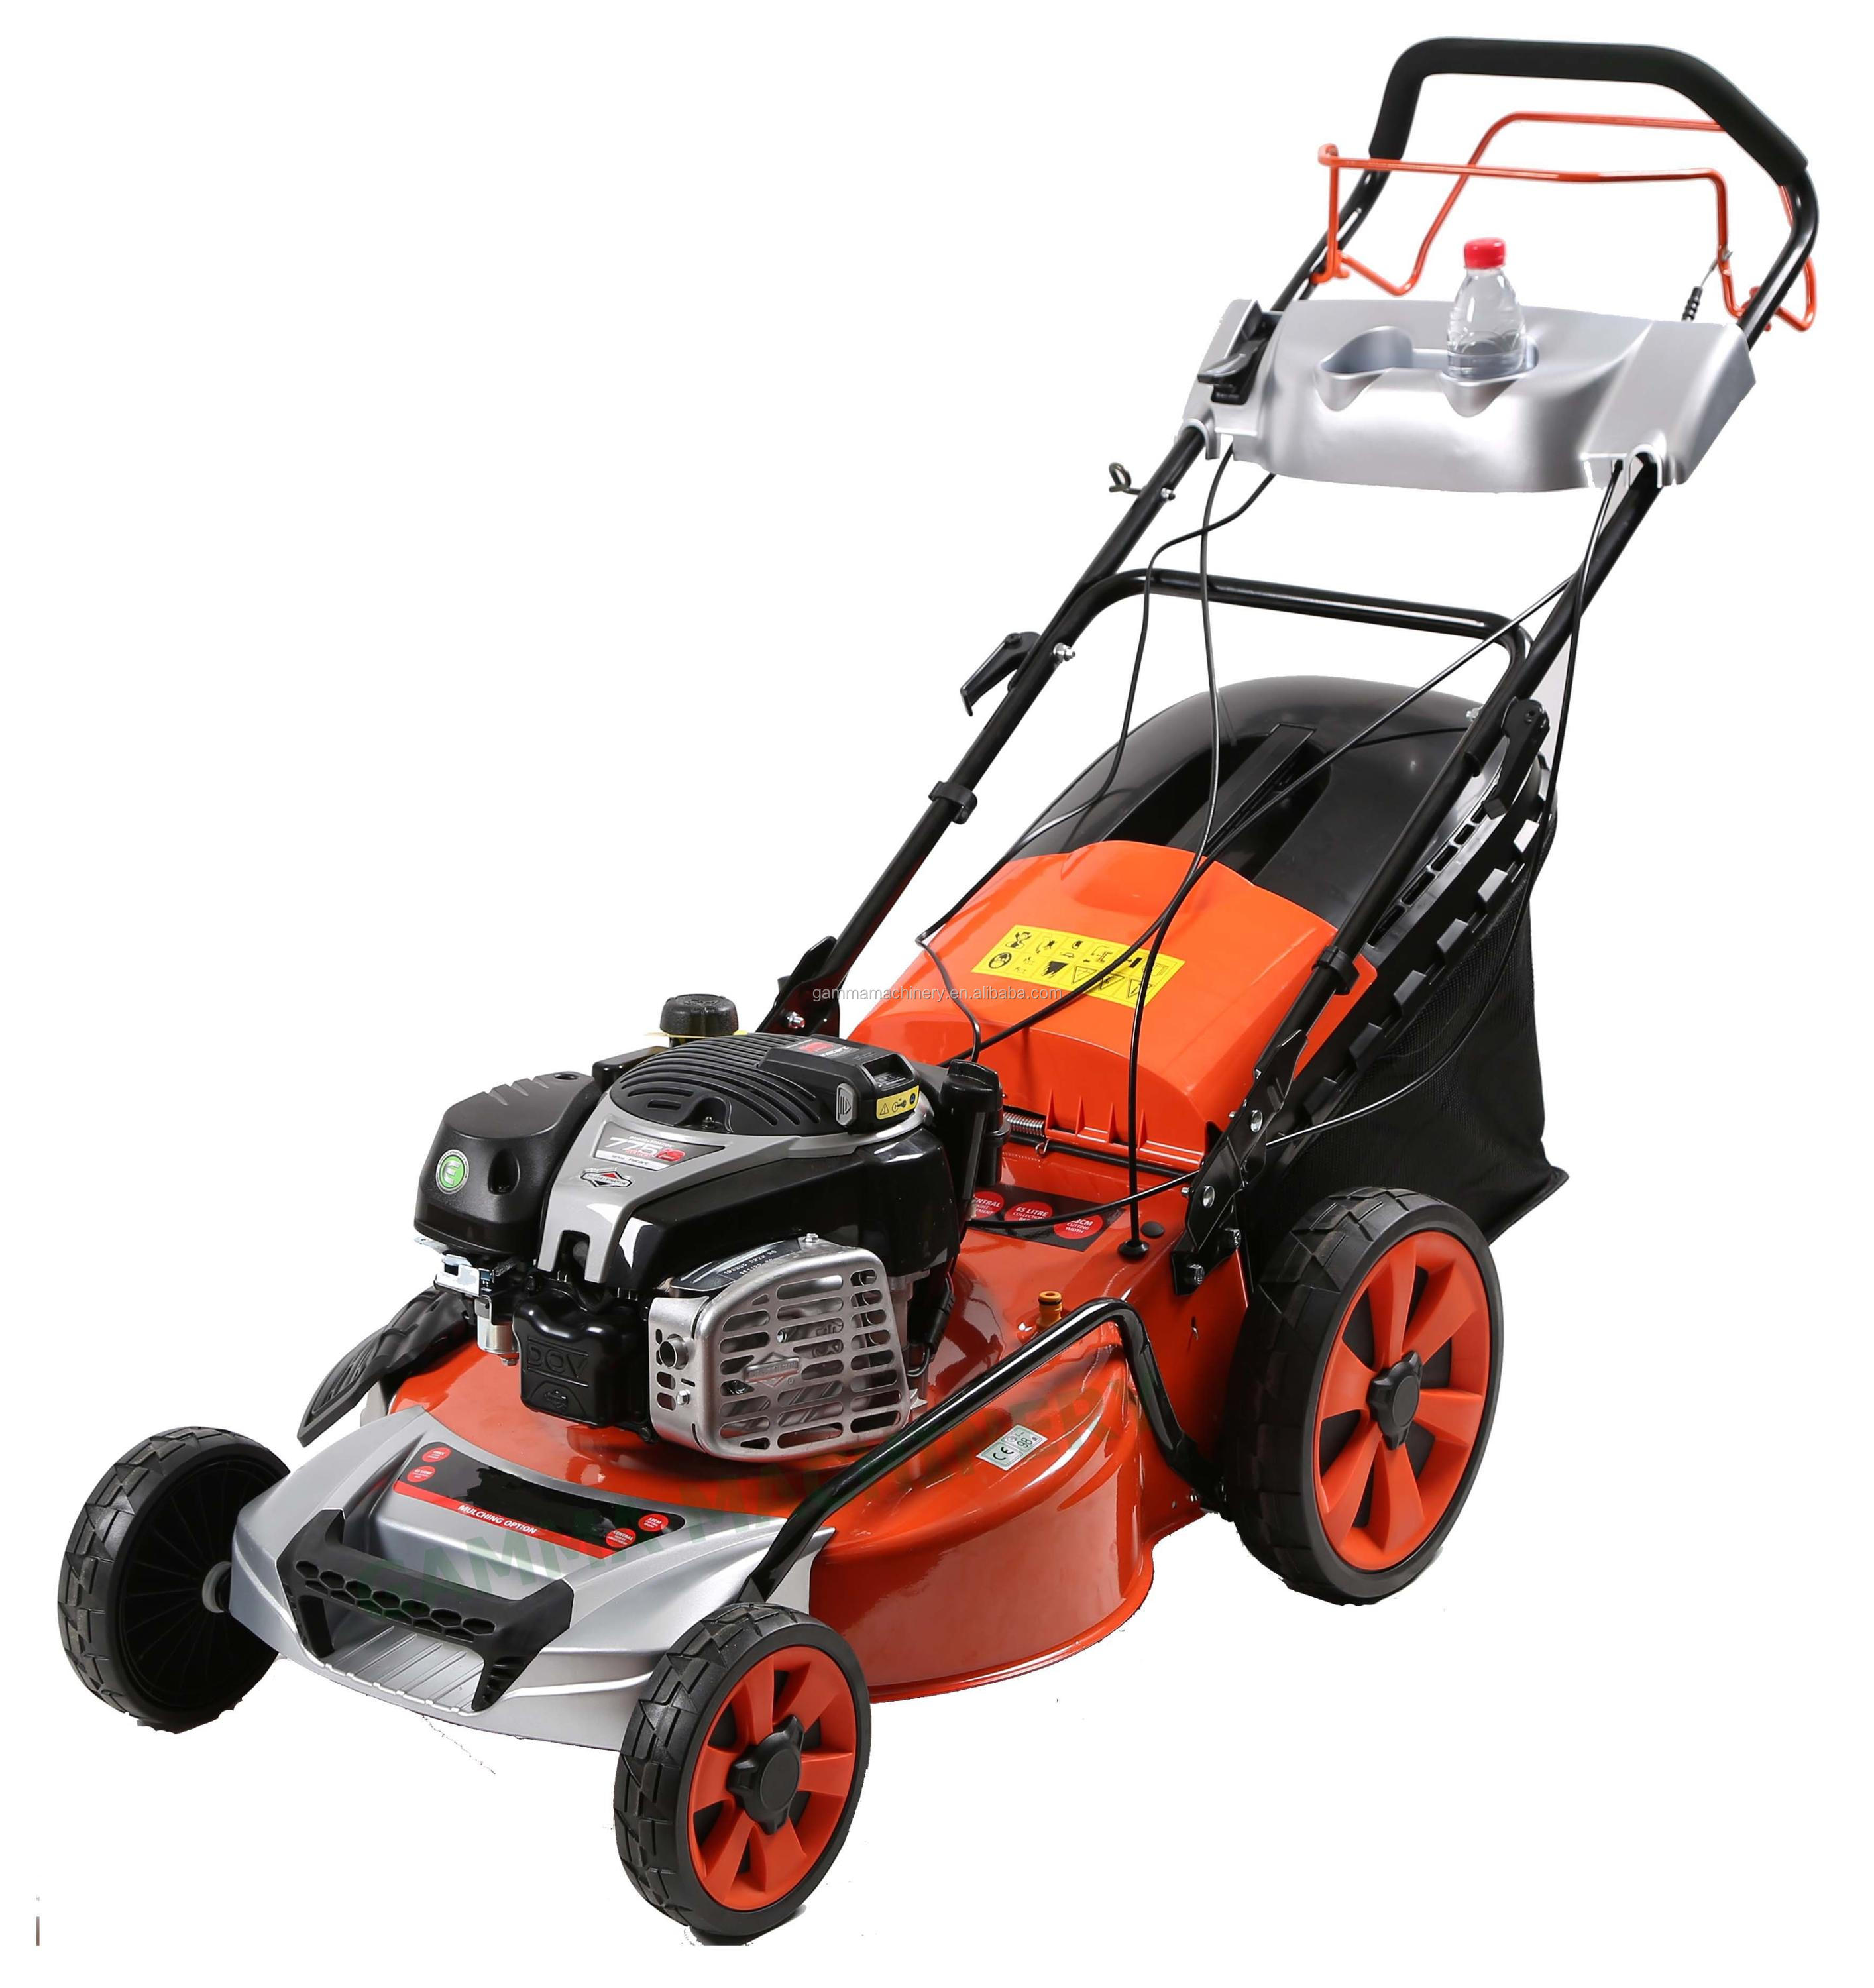 Electric Lawn Mower Sale Walk Behind Robot Lawn Mower In Aluminium Deck With Electric Start For Sale Buy Lawn Mower Motor Lawn Mower Racing Wheel Electric Lawn Mower Product